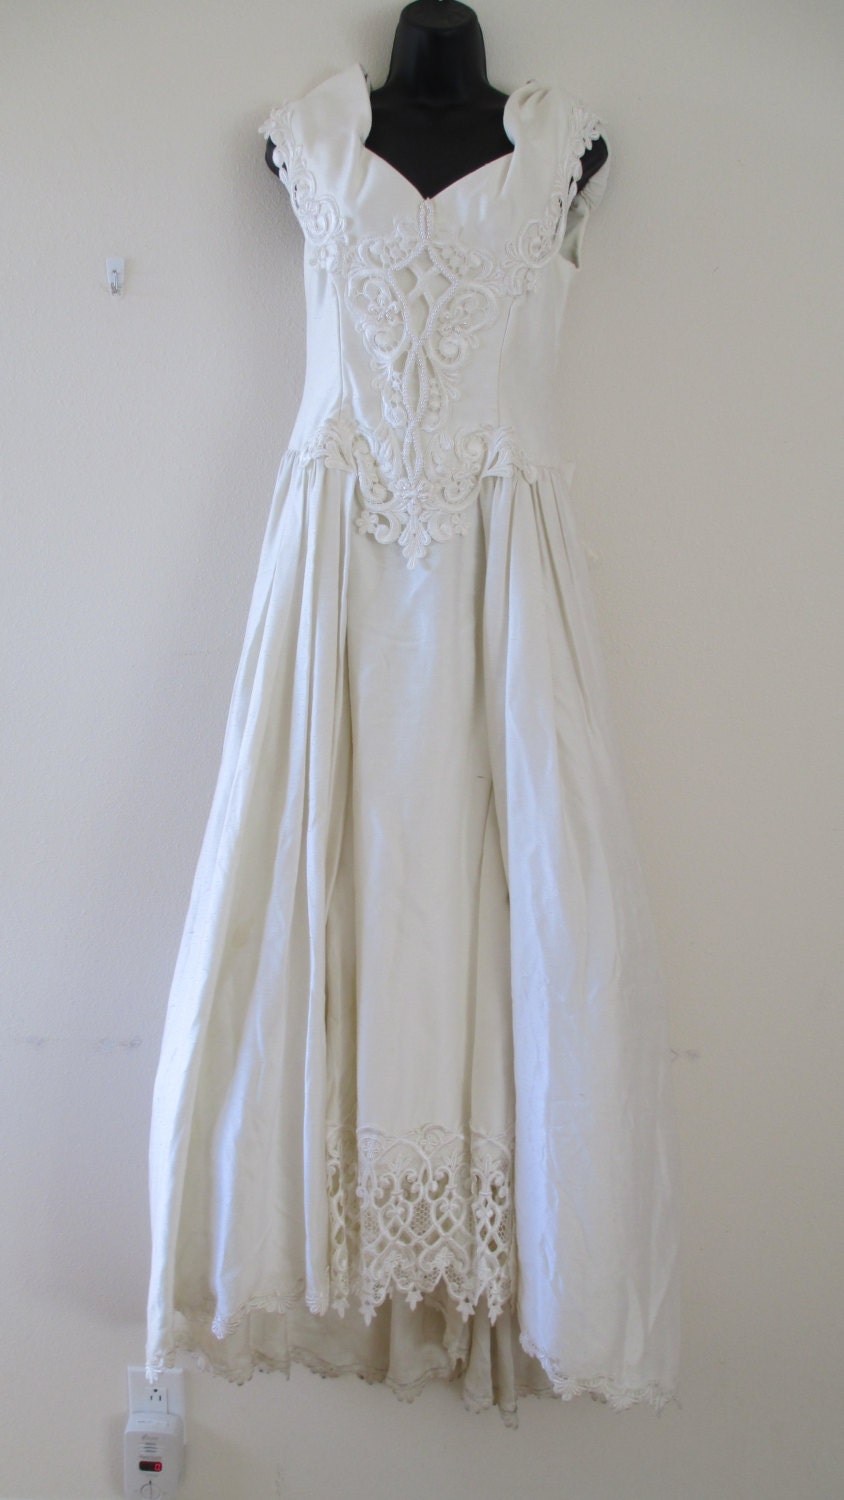 Jessica mcclintock wedding party dress free by for Jessica mcclintock wedding dresses outlet